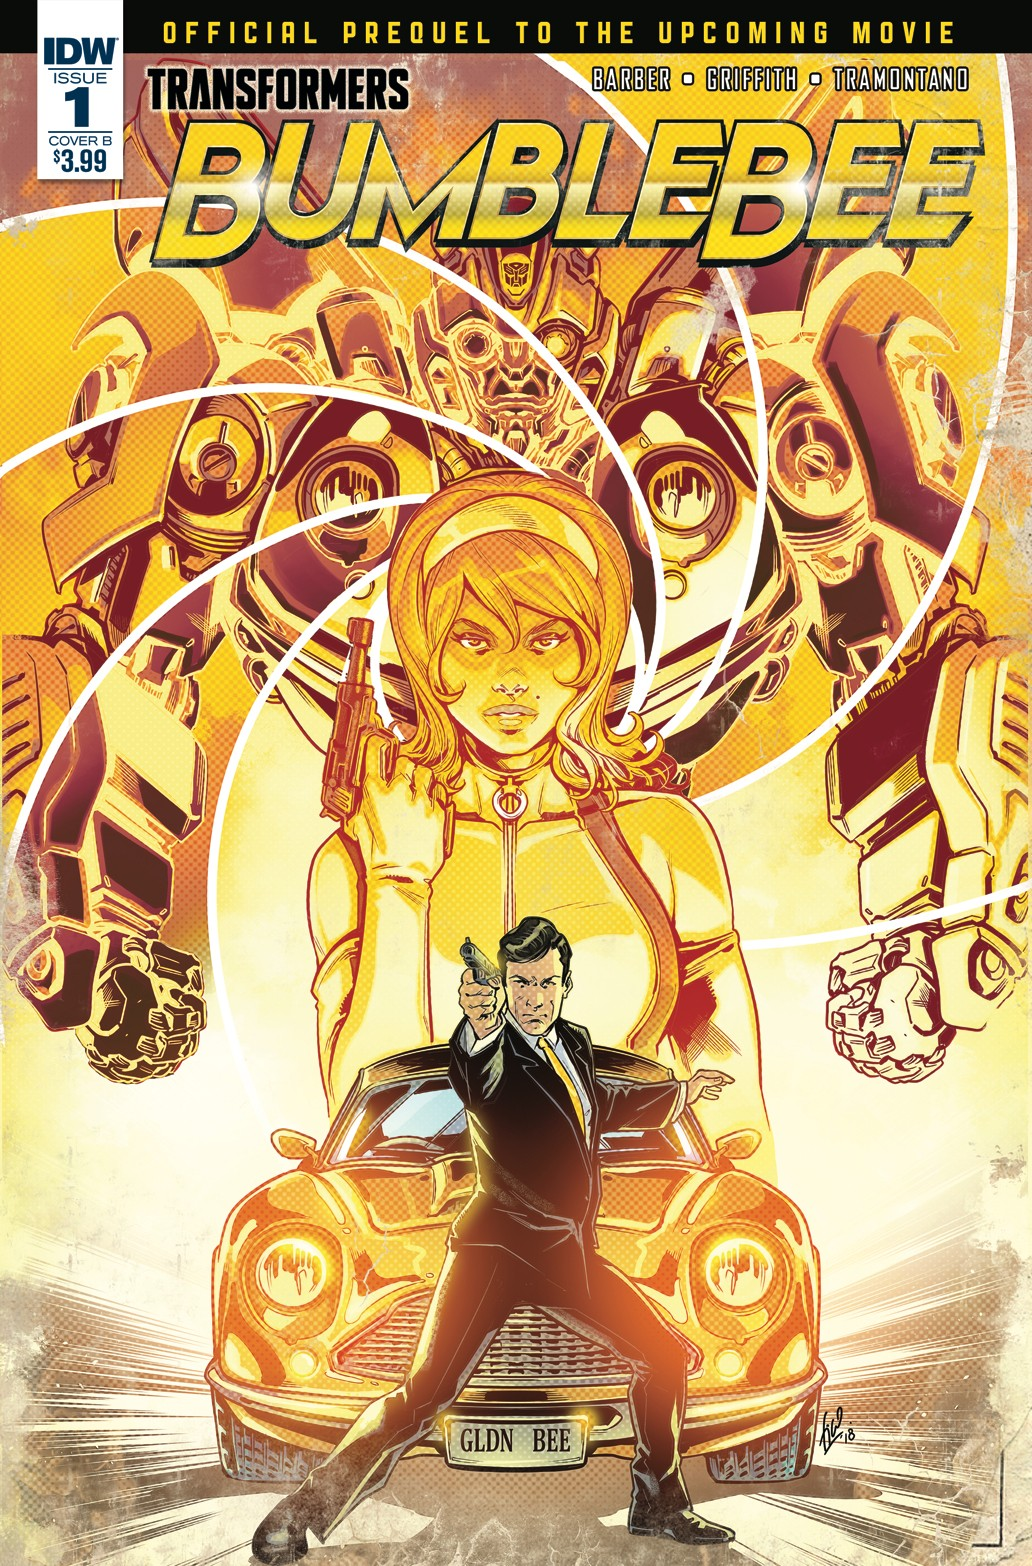 Transformers News: Synopses for IDW Transformers Bumblebee: From Cybertron with Love Issues #1-3